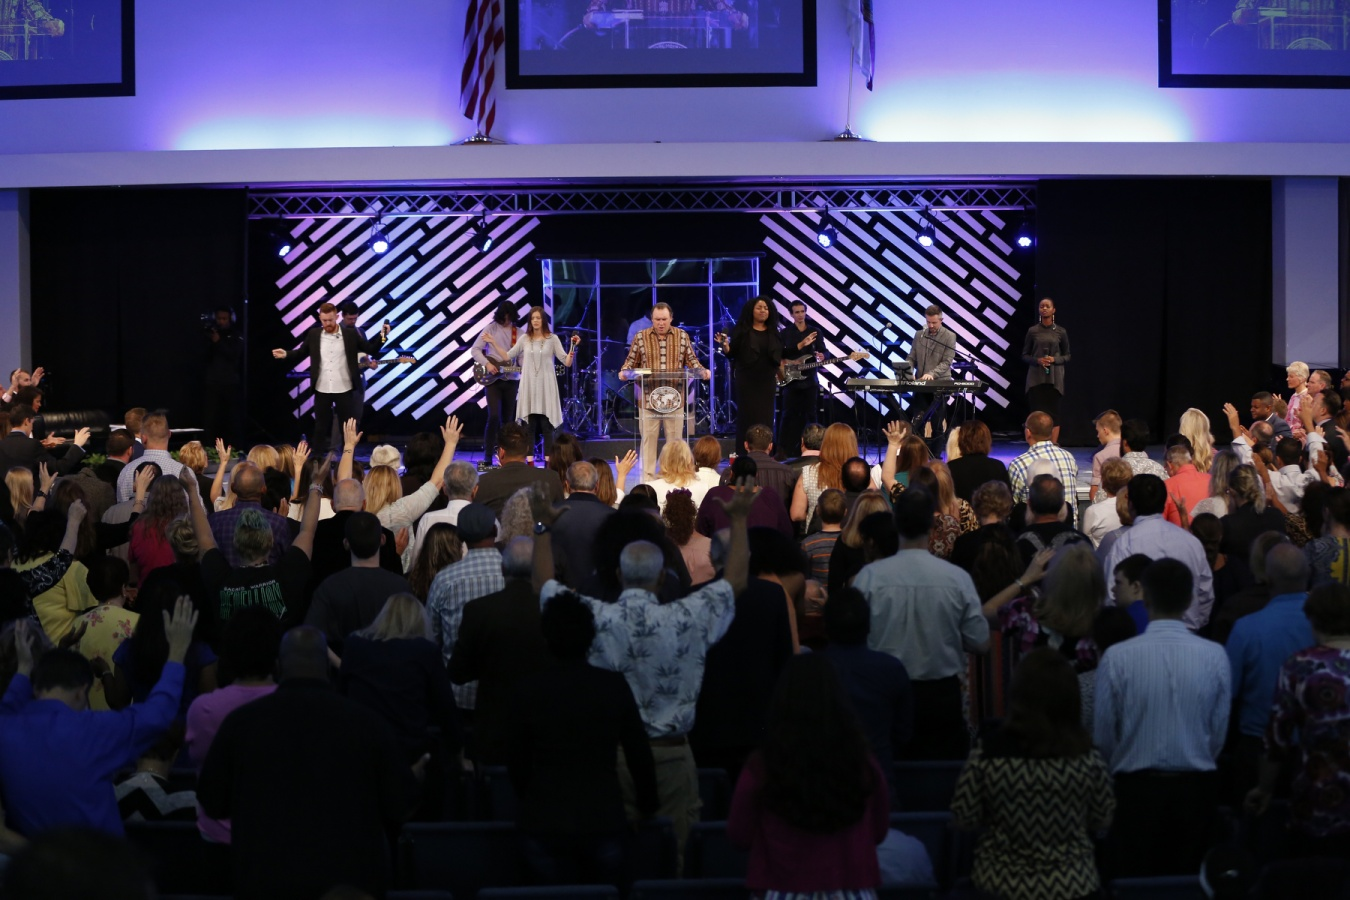 Spring Ministers' and Leaders' Conference 2019